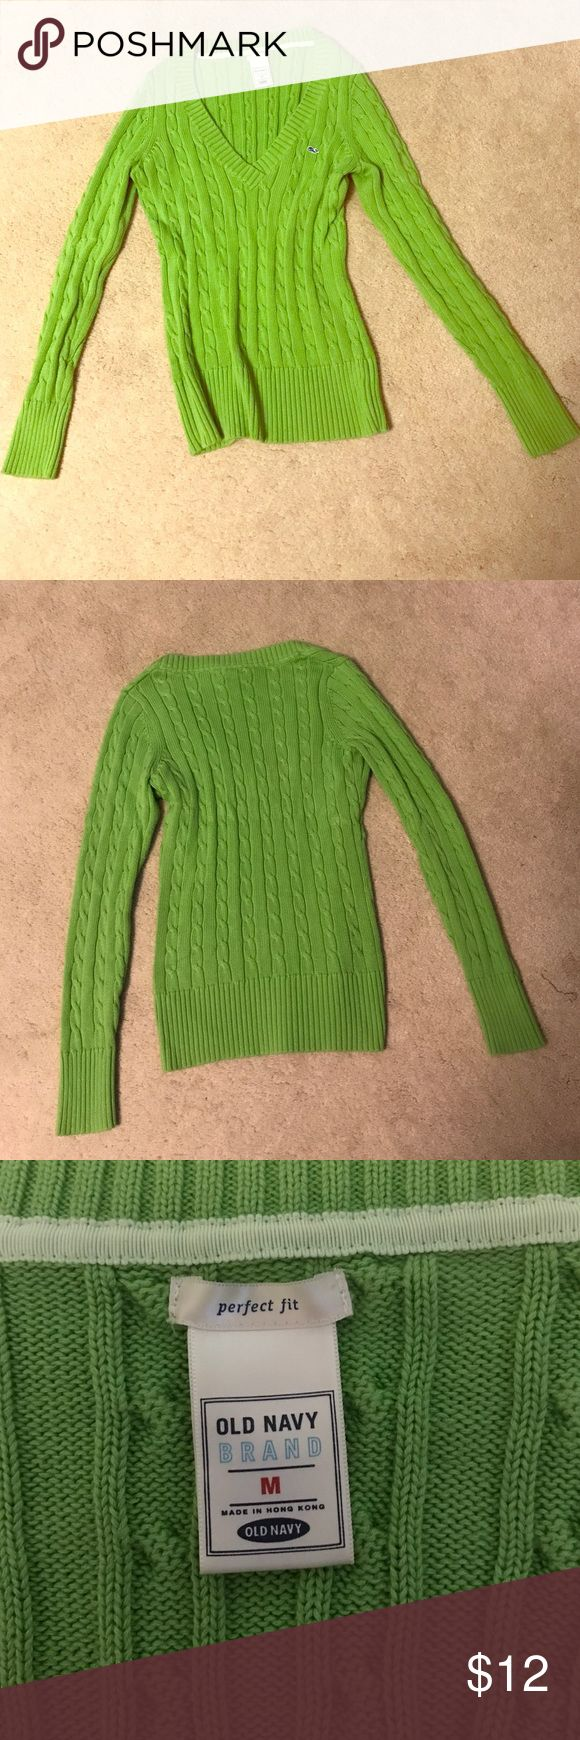 Lime green Old Navy Sweater Lime green Old Navy women's v neck sweater. In perfect used condition! No stains rips or tears! Old Navy Sweaters V-Necks